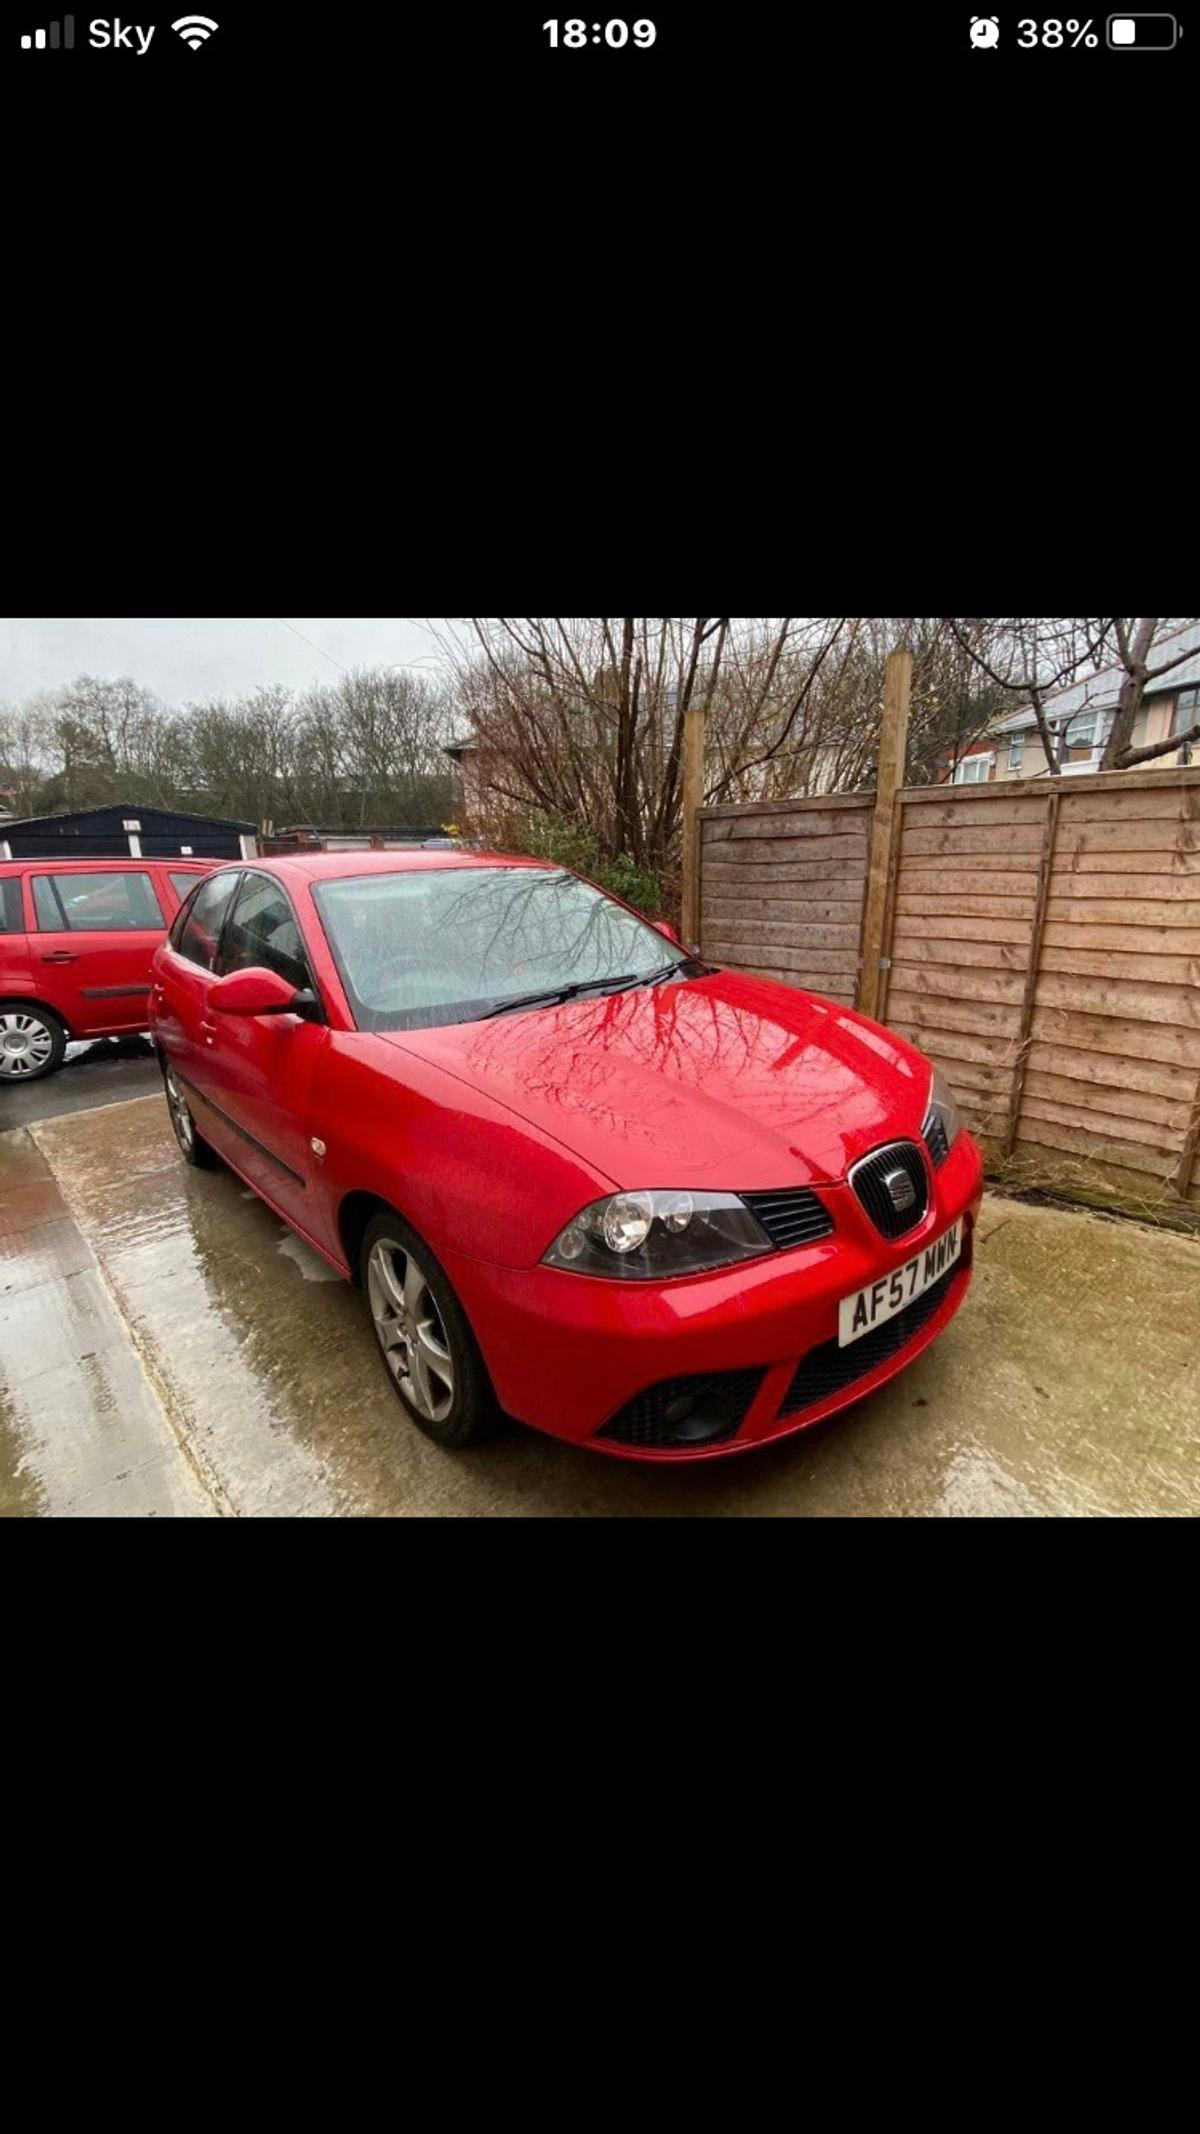 57 plate seat Ibiza 1.9d 2007 1.9 seat Ibiza sport tdi, done 150,00 miles, only 3 previous owners, few age related marks, NEEDS A EGR VALVE, been quoted £110 for repair, still drives well, only selling due to new car, MOT till June, cheap to insure, ideal first car for someone. £695 ono, 2 Owners